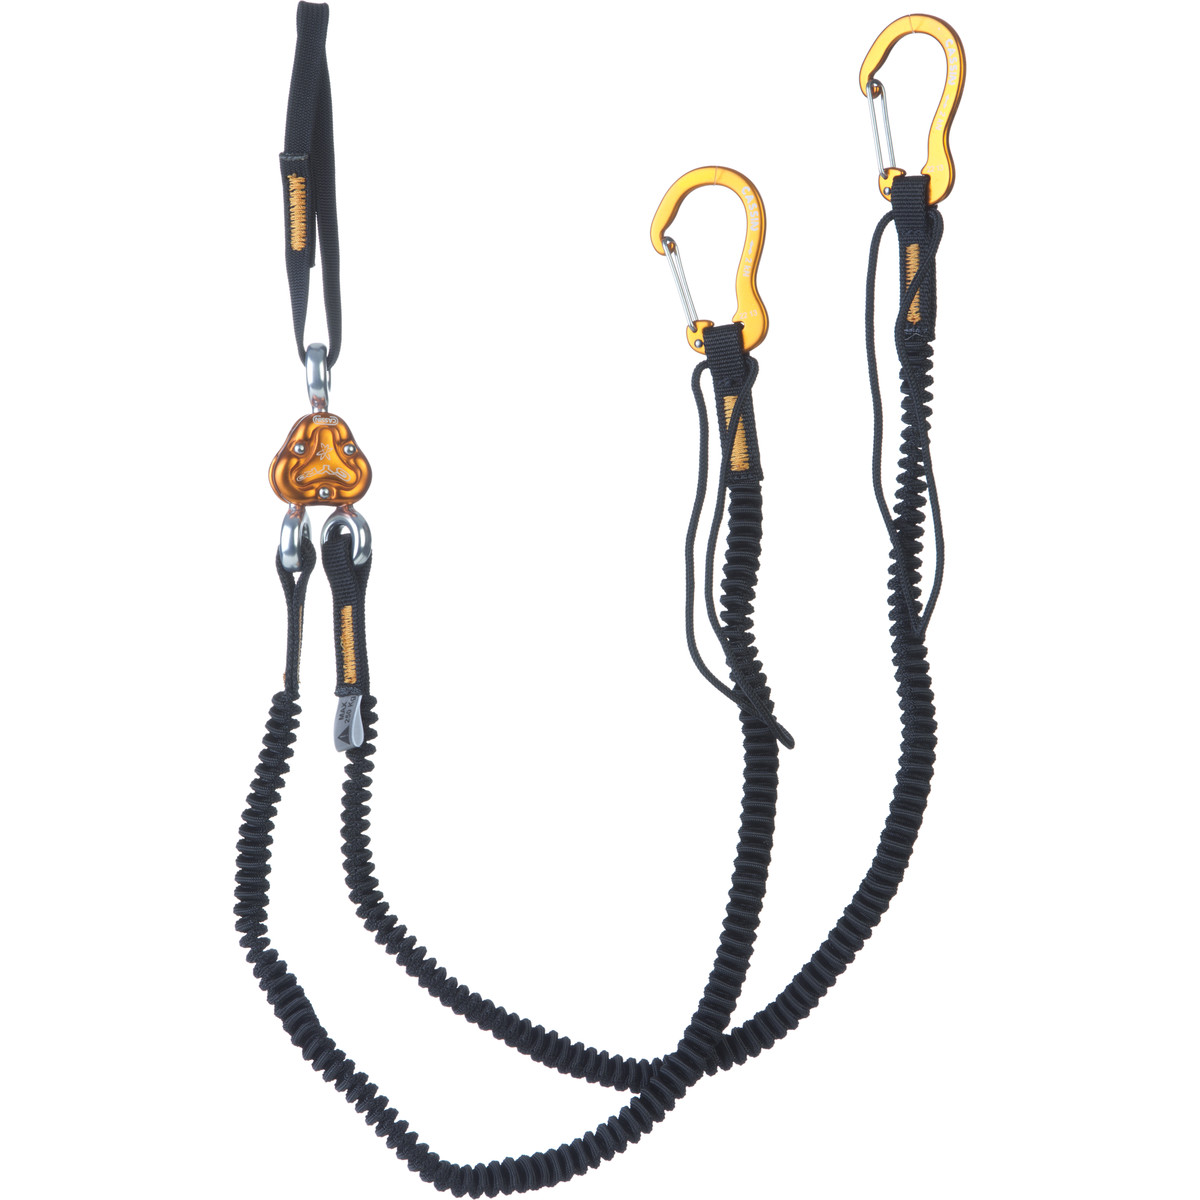 CAMP X-Gyro Leash